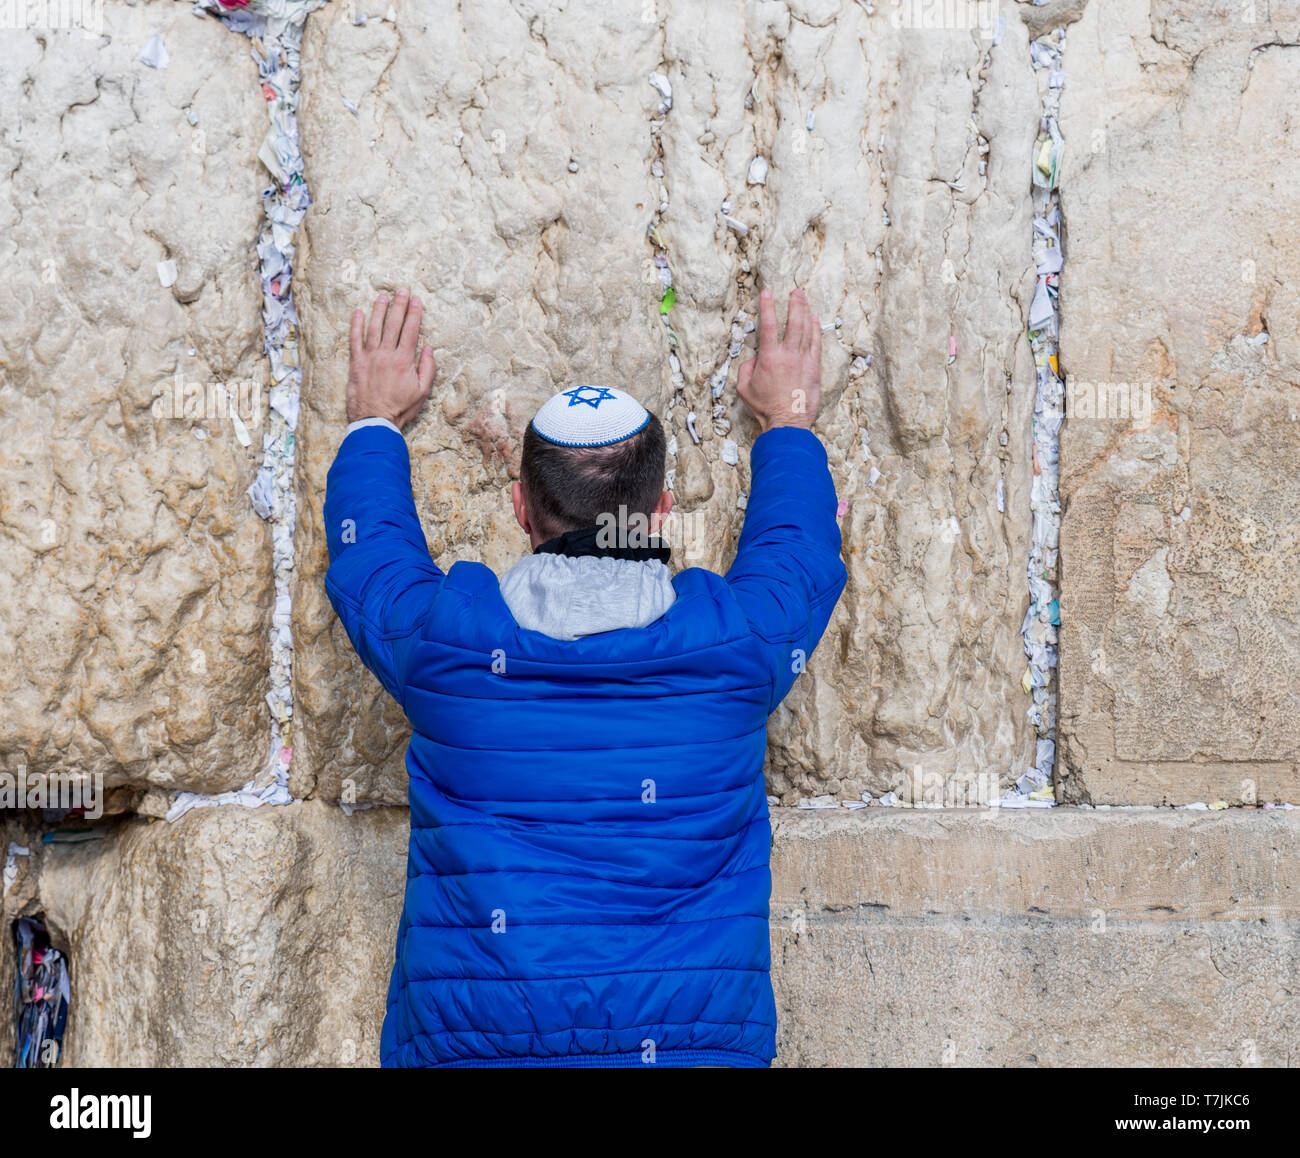 Jerusalem,Israel,27-march-2019:Jewish man prays in blue with keppel with david cross next to a crack filled with letters containing written prayers at Stock Photo